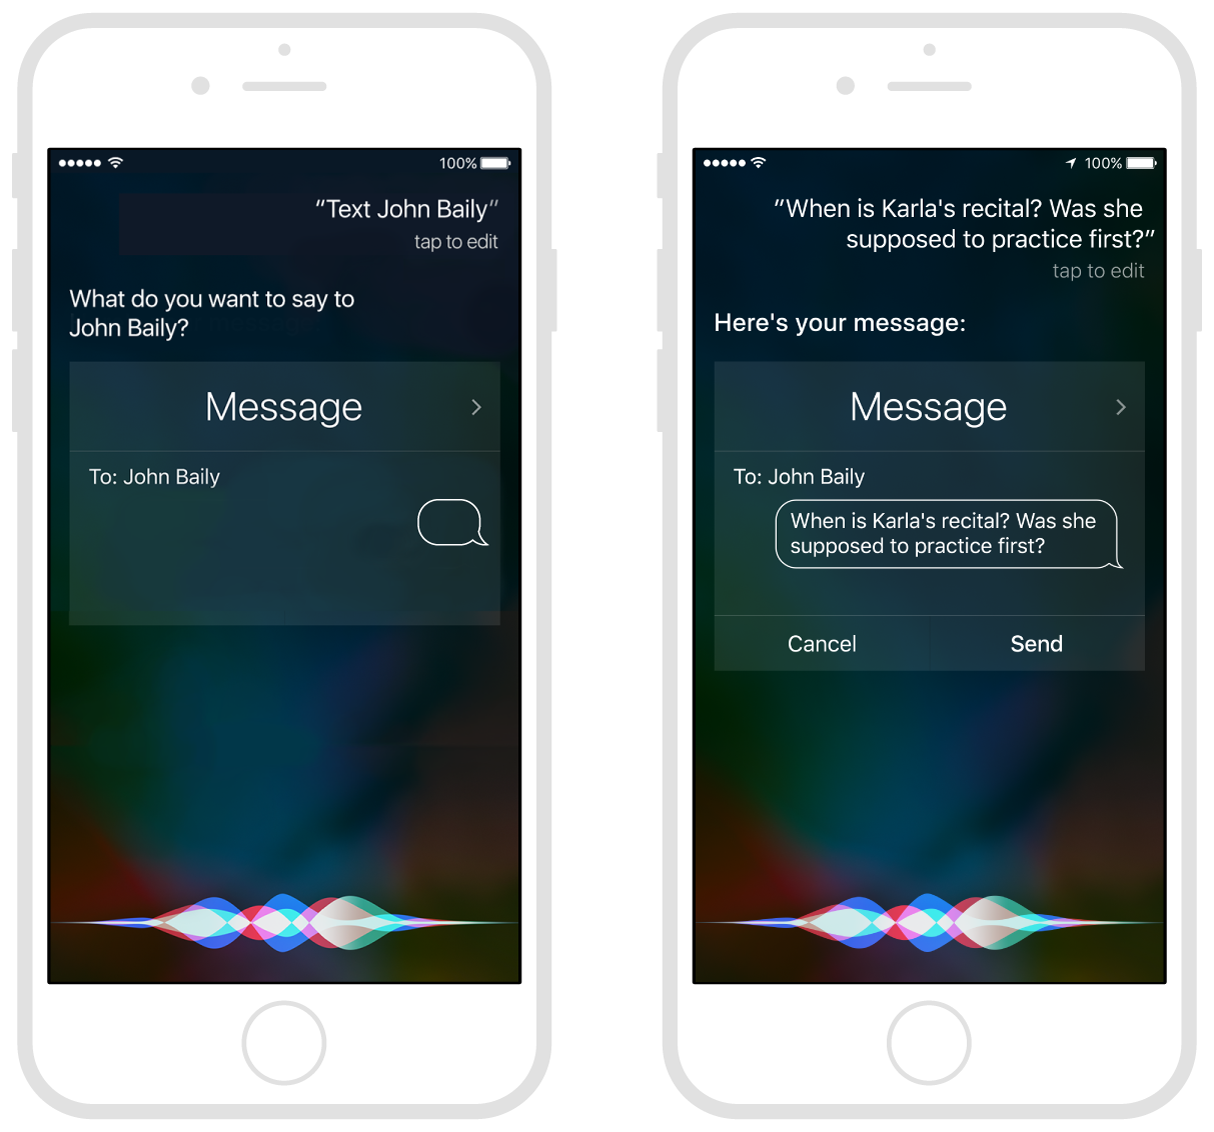 Sending a message using Siri